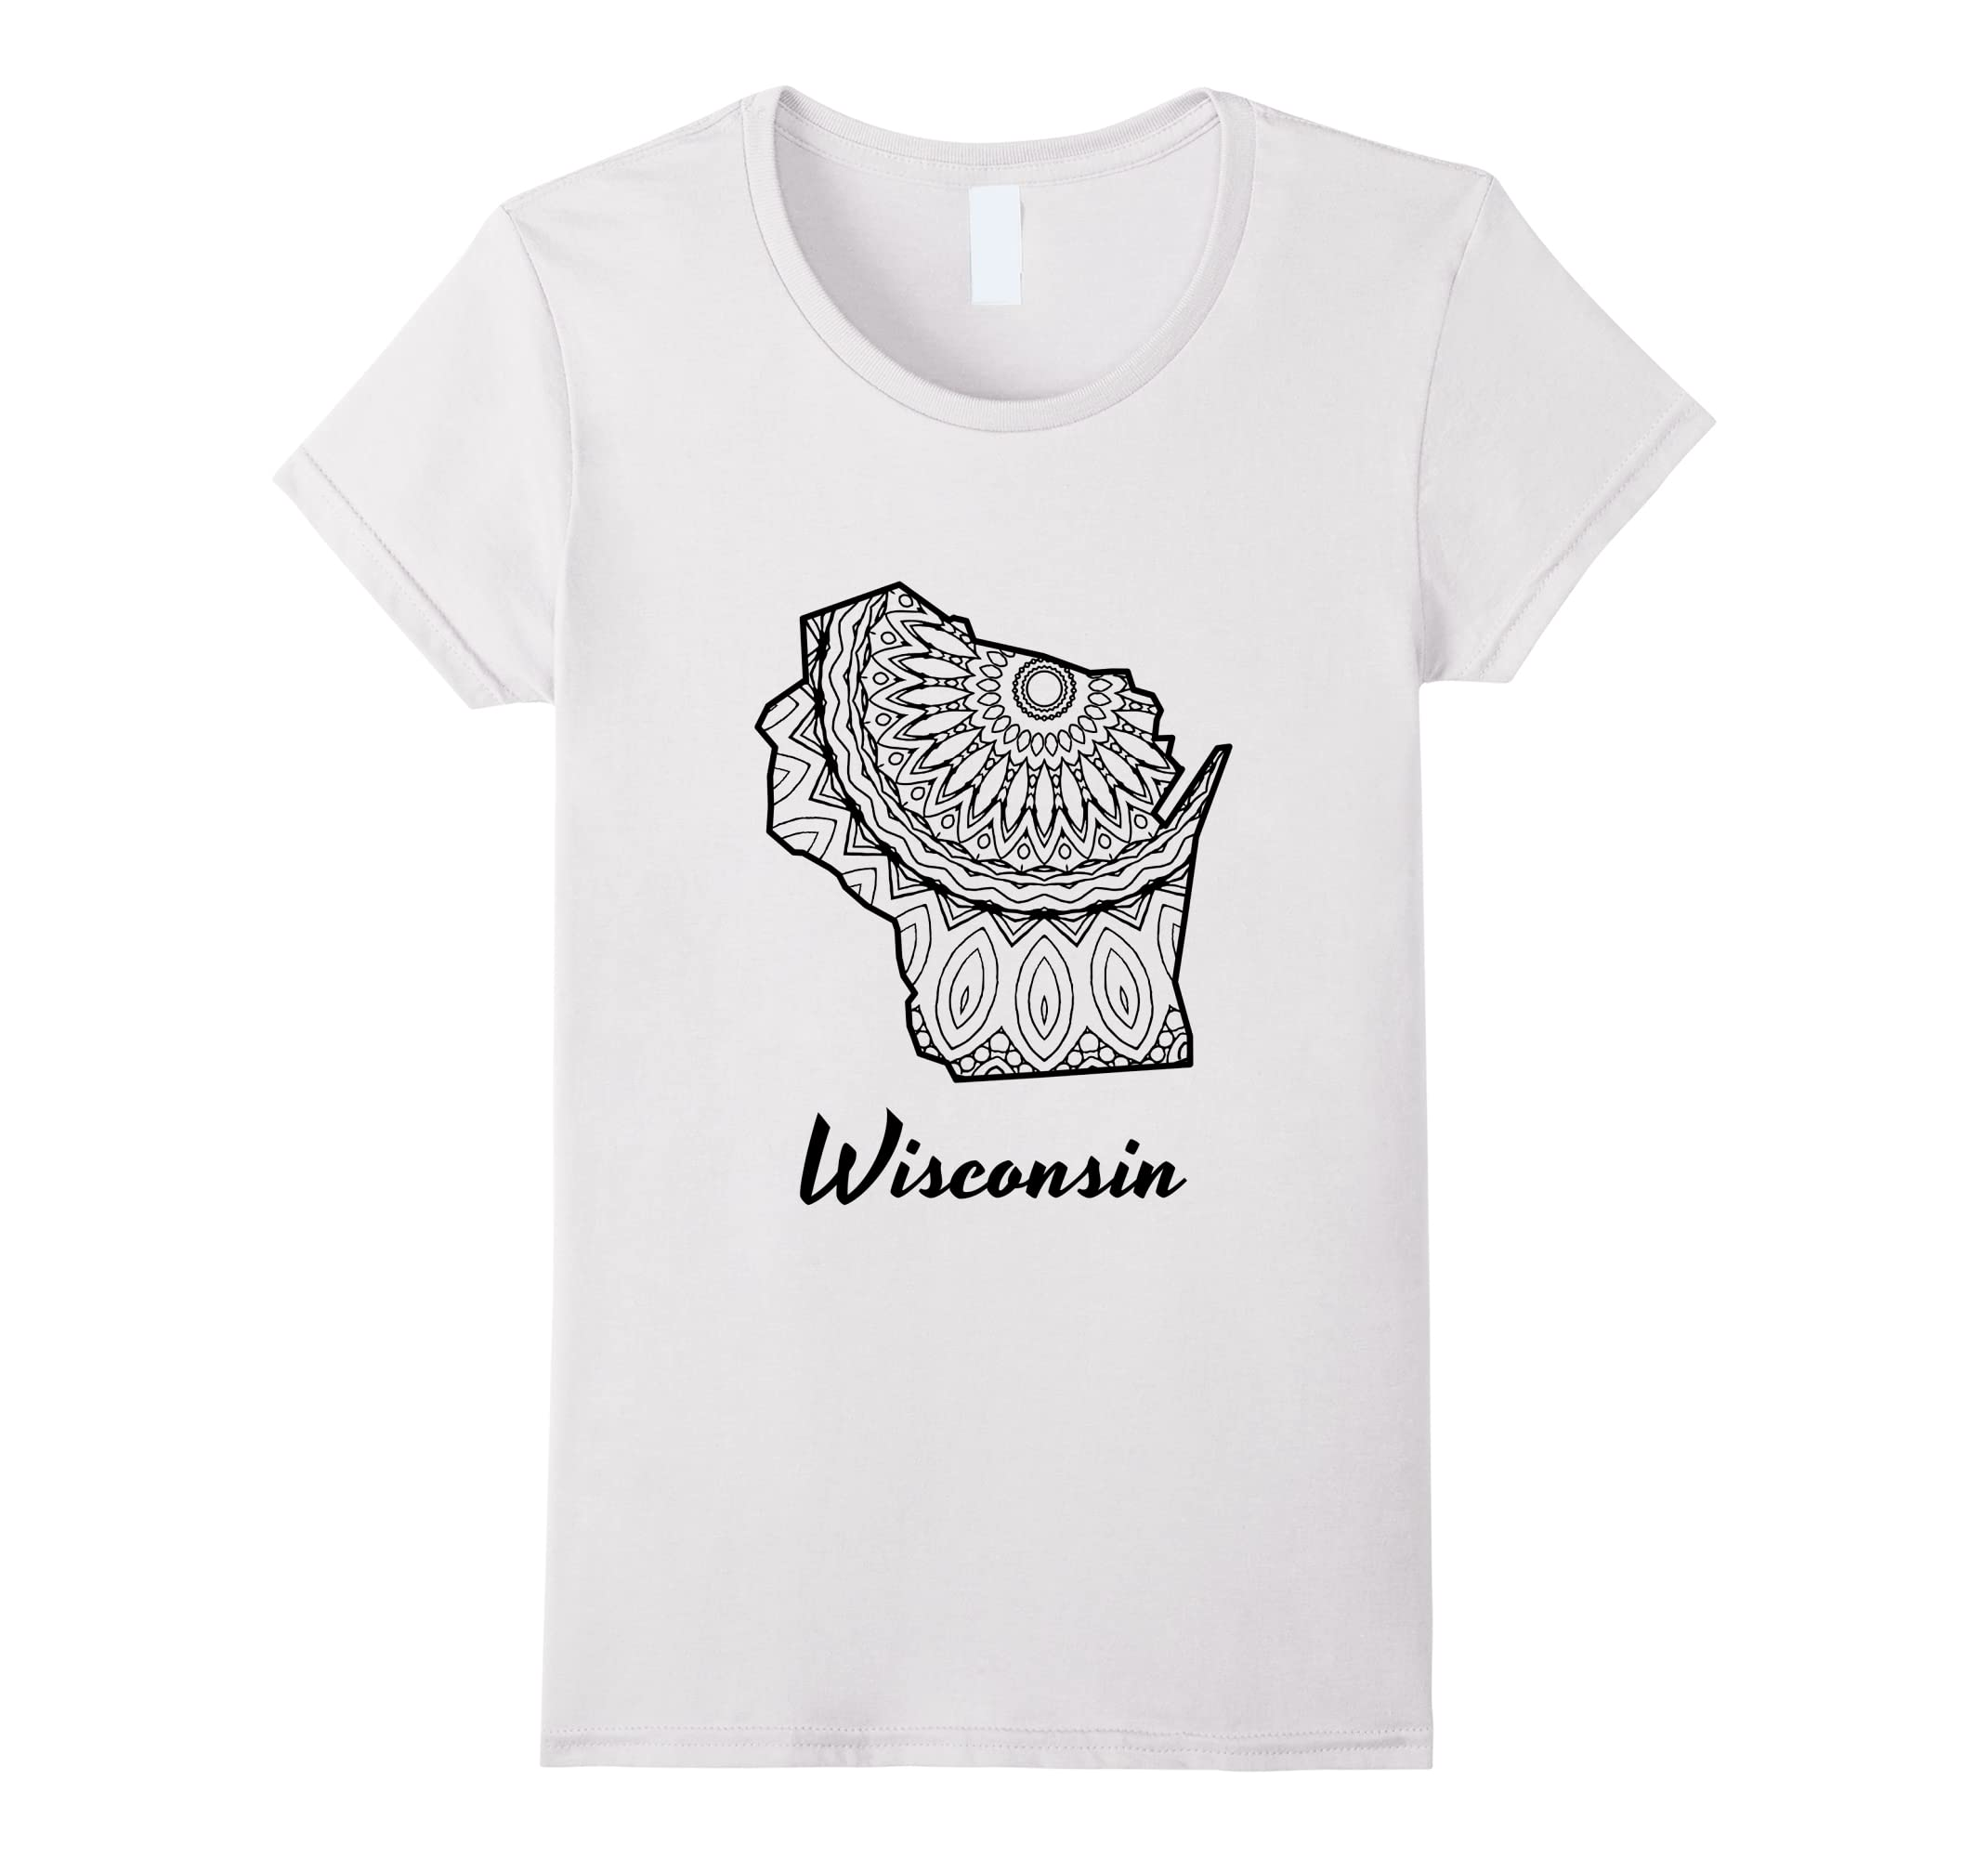 Wisconsin Home State T shirt Coloring-Samdetee